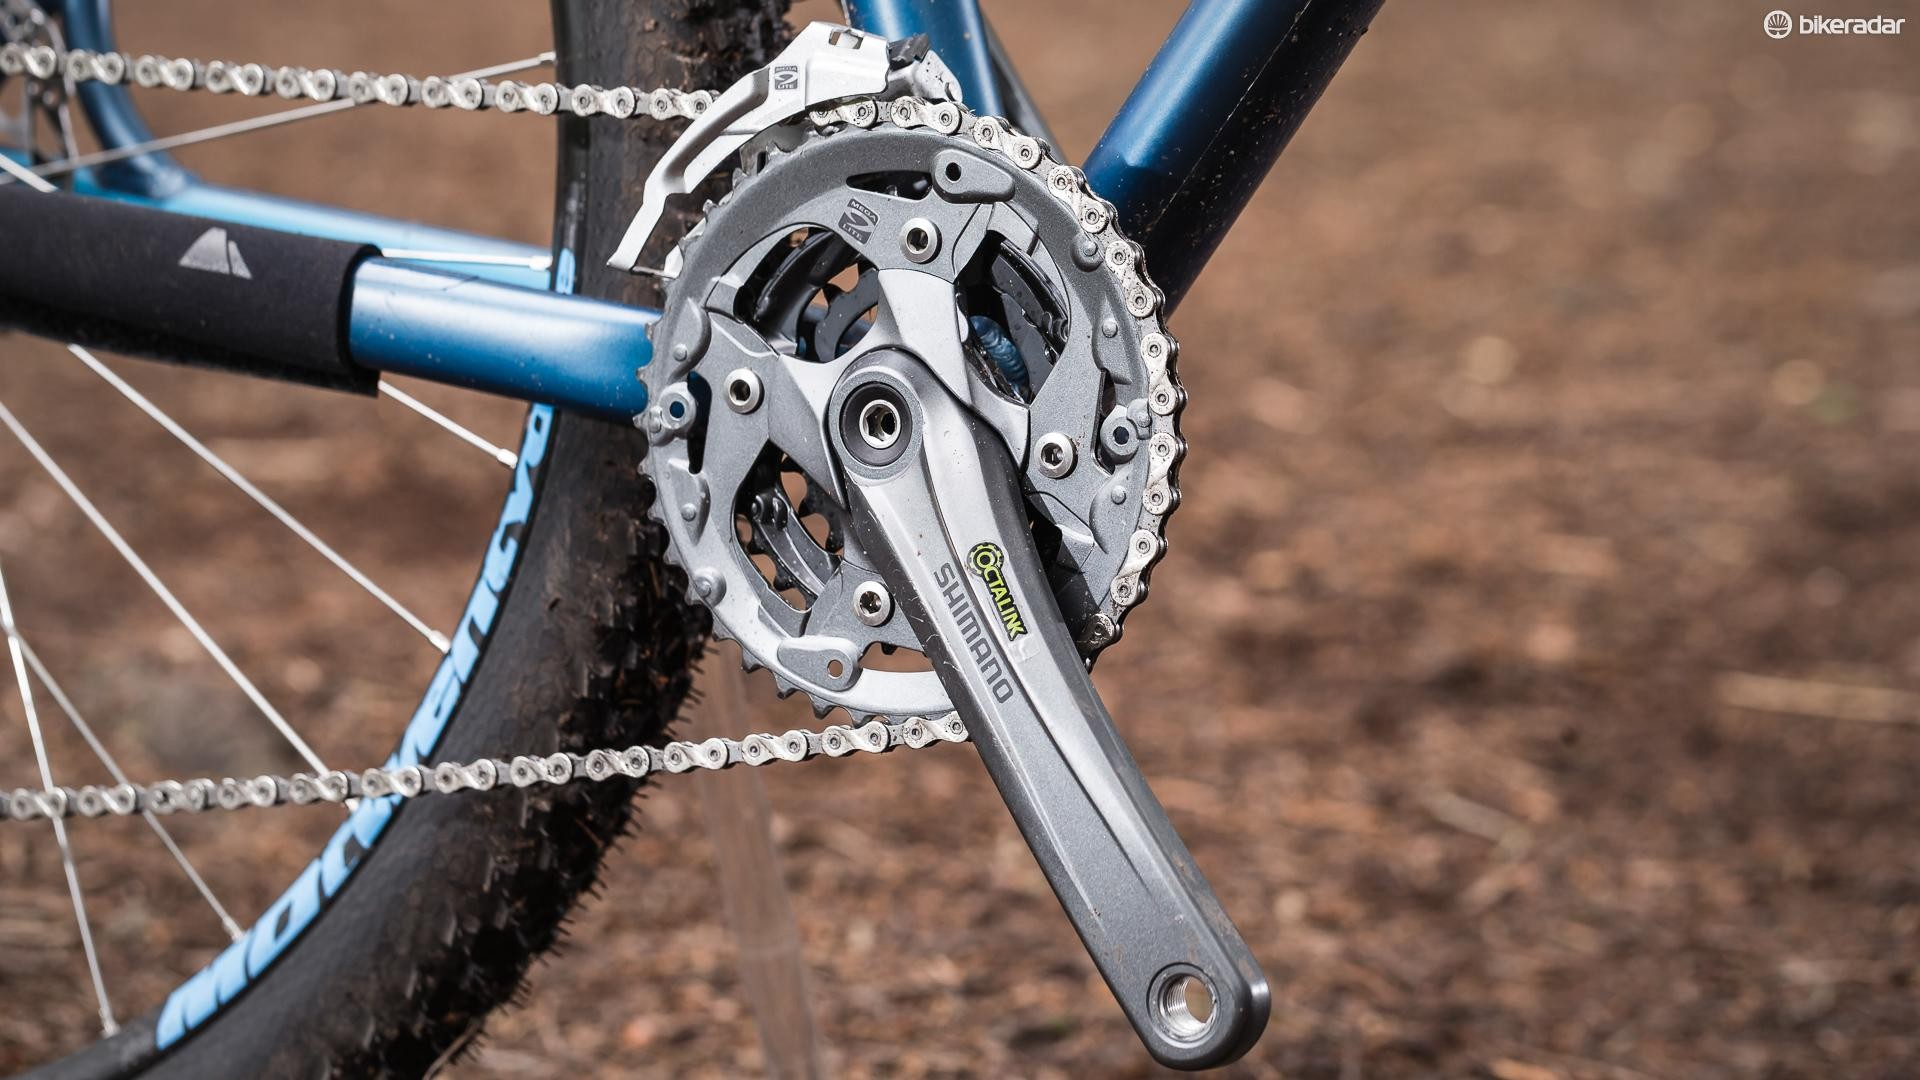 The triple chainset uses a durable splined bottom bracket